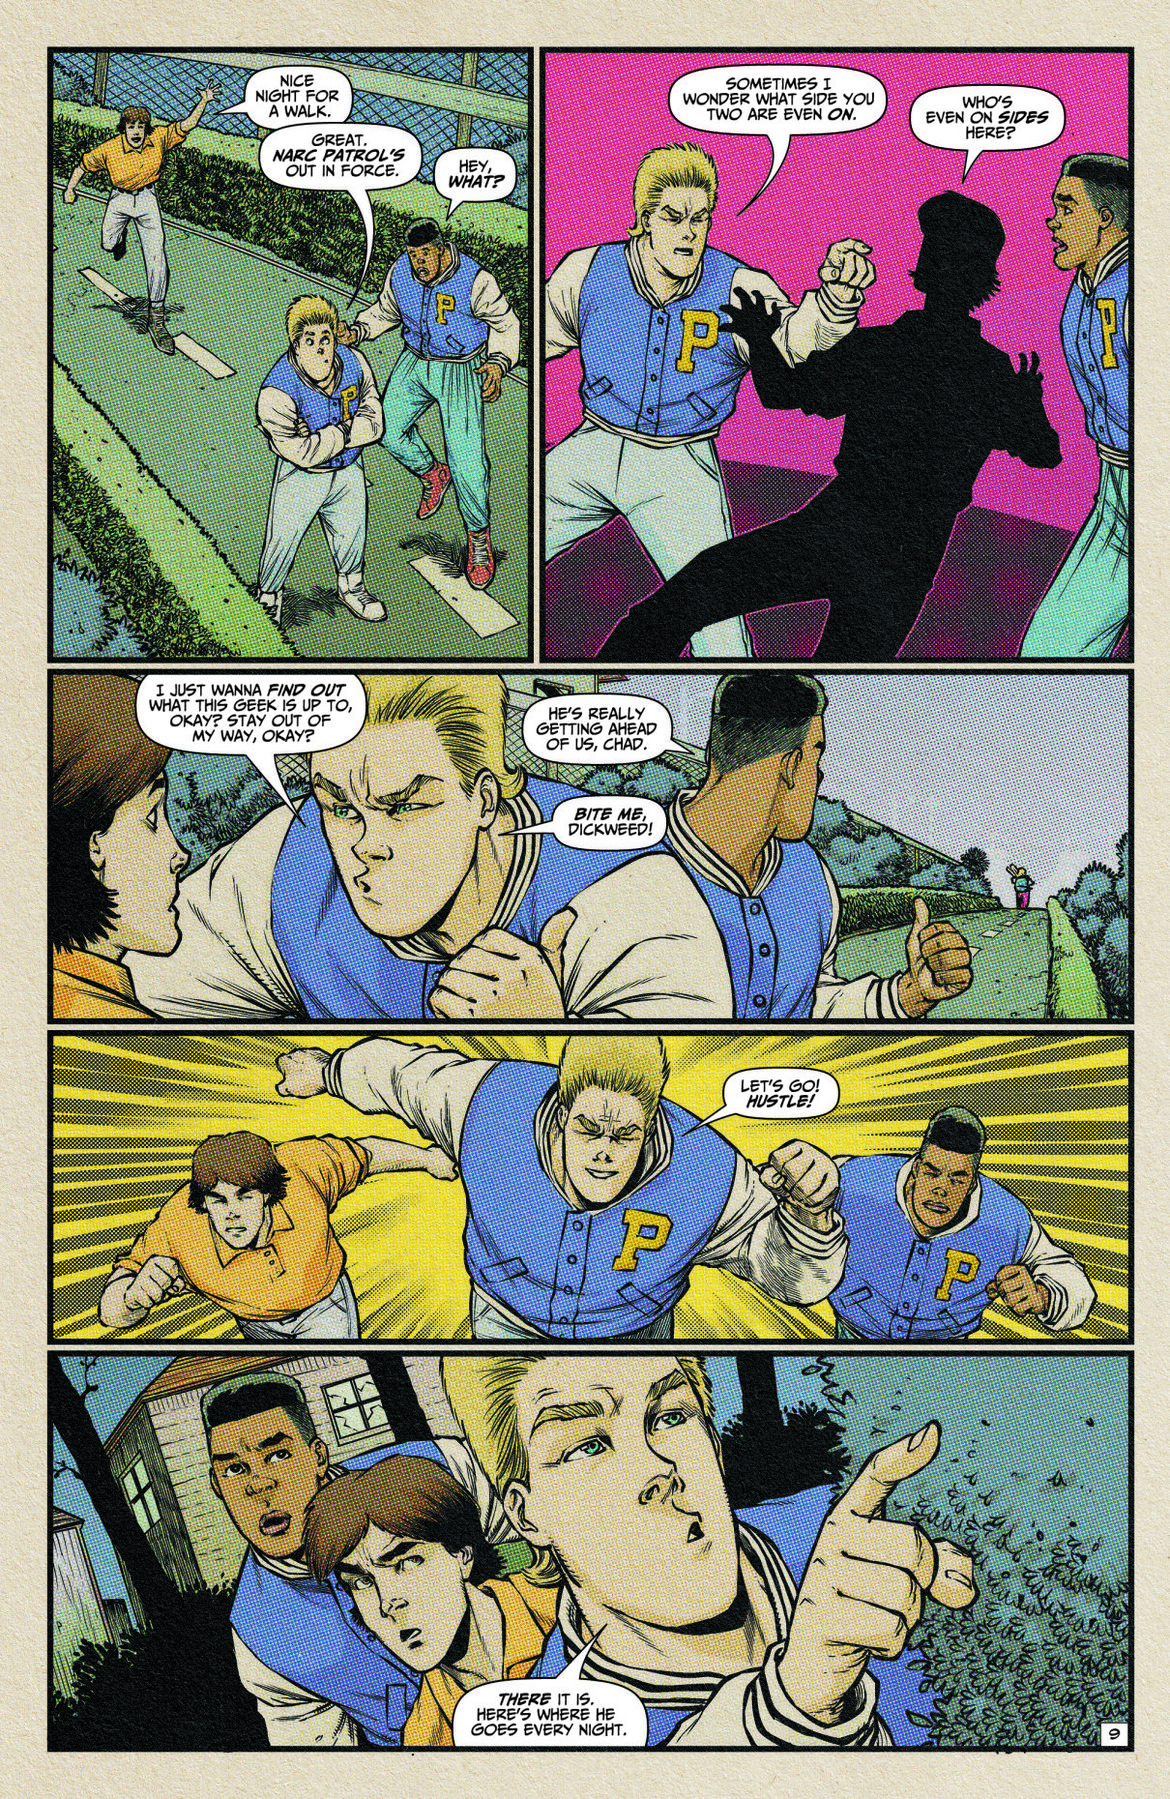 Planet of the Nerds #1 Page 1 Preview